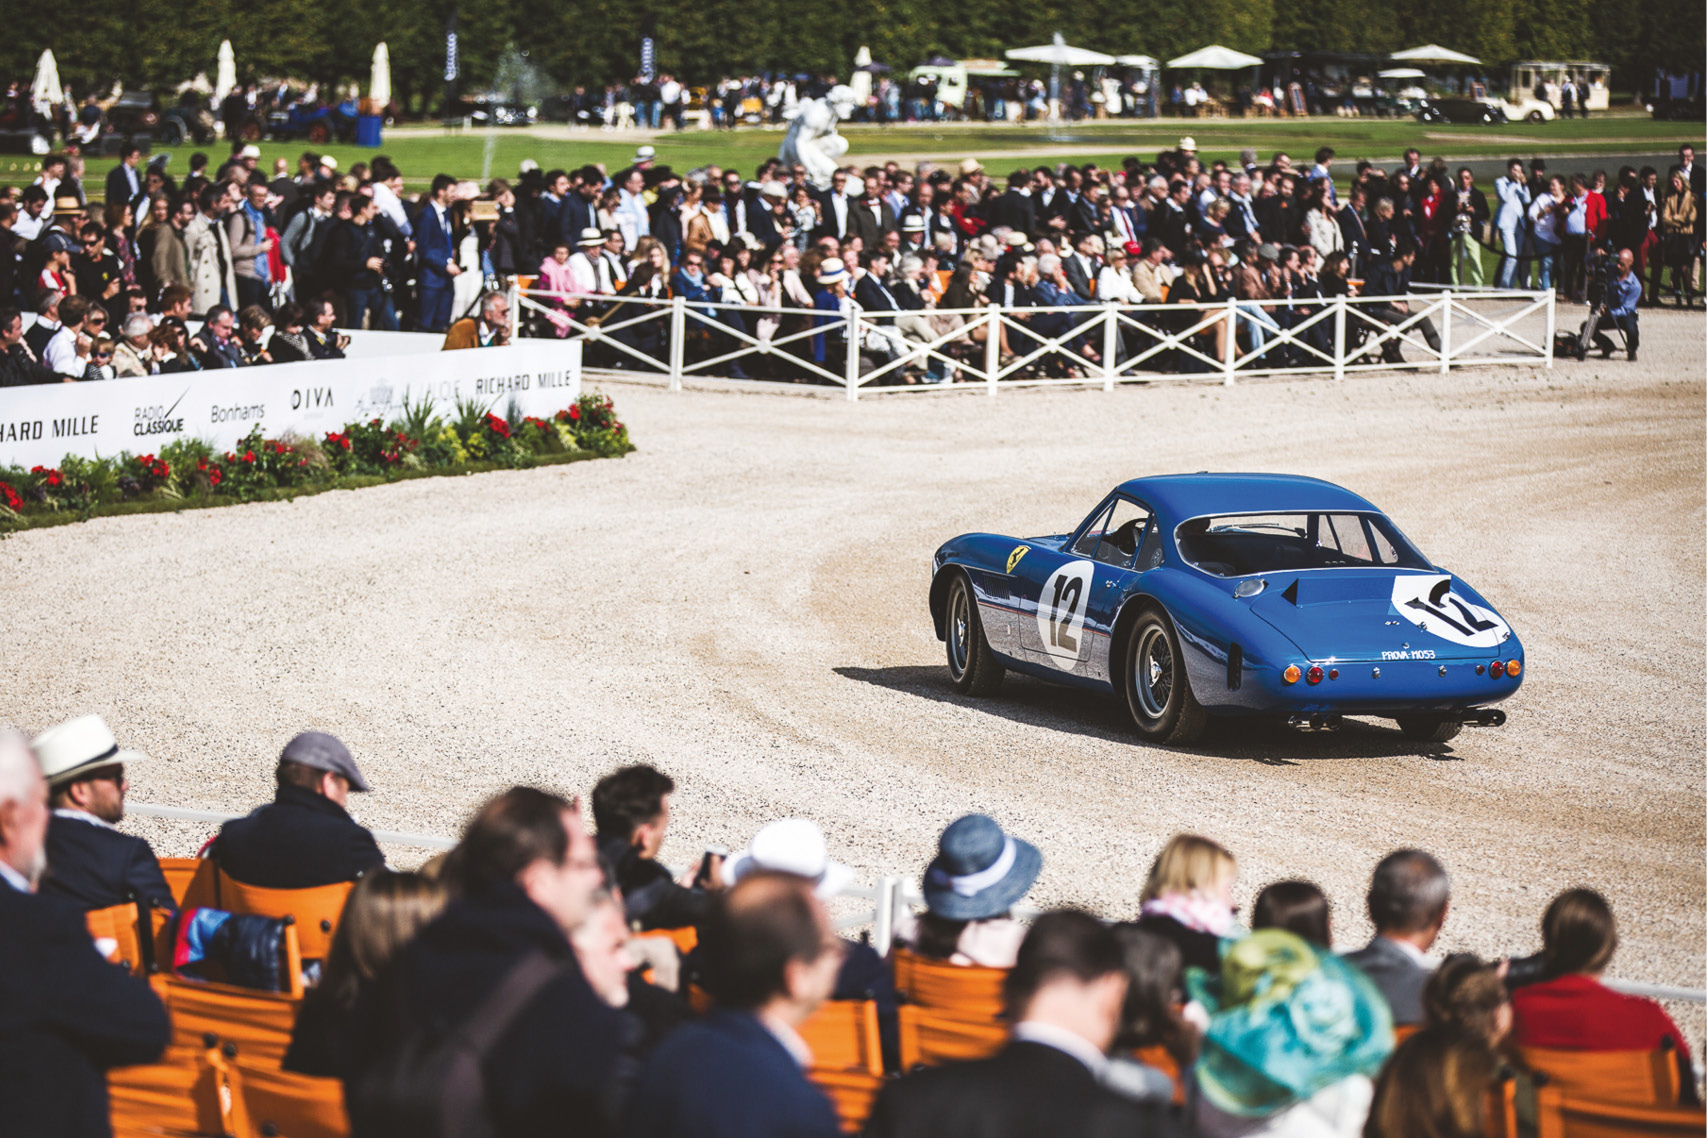 Chantilly is one of the most glamorous events on the concours circuit